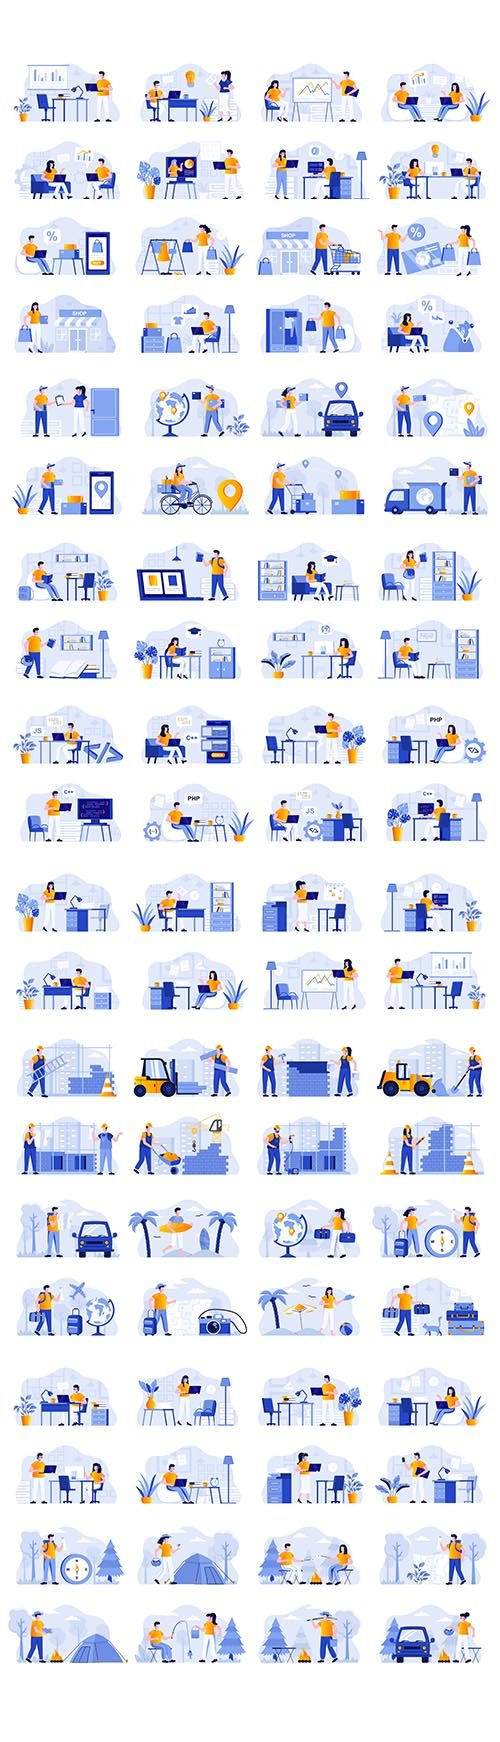 Business Scenes Bundle with People Characters Flat Illustration